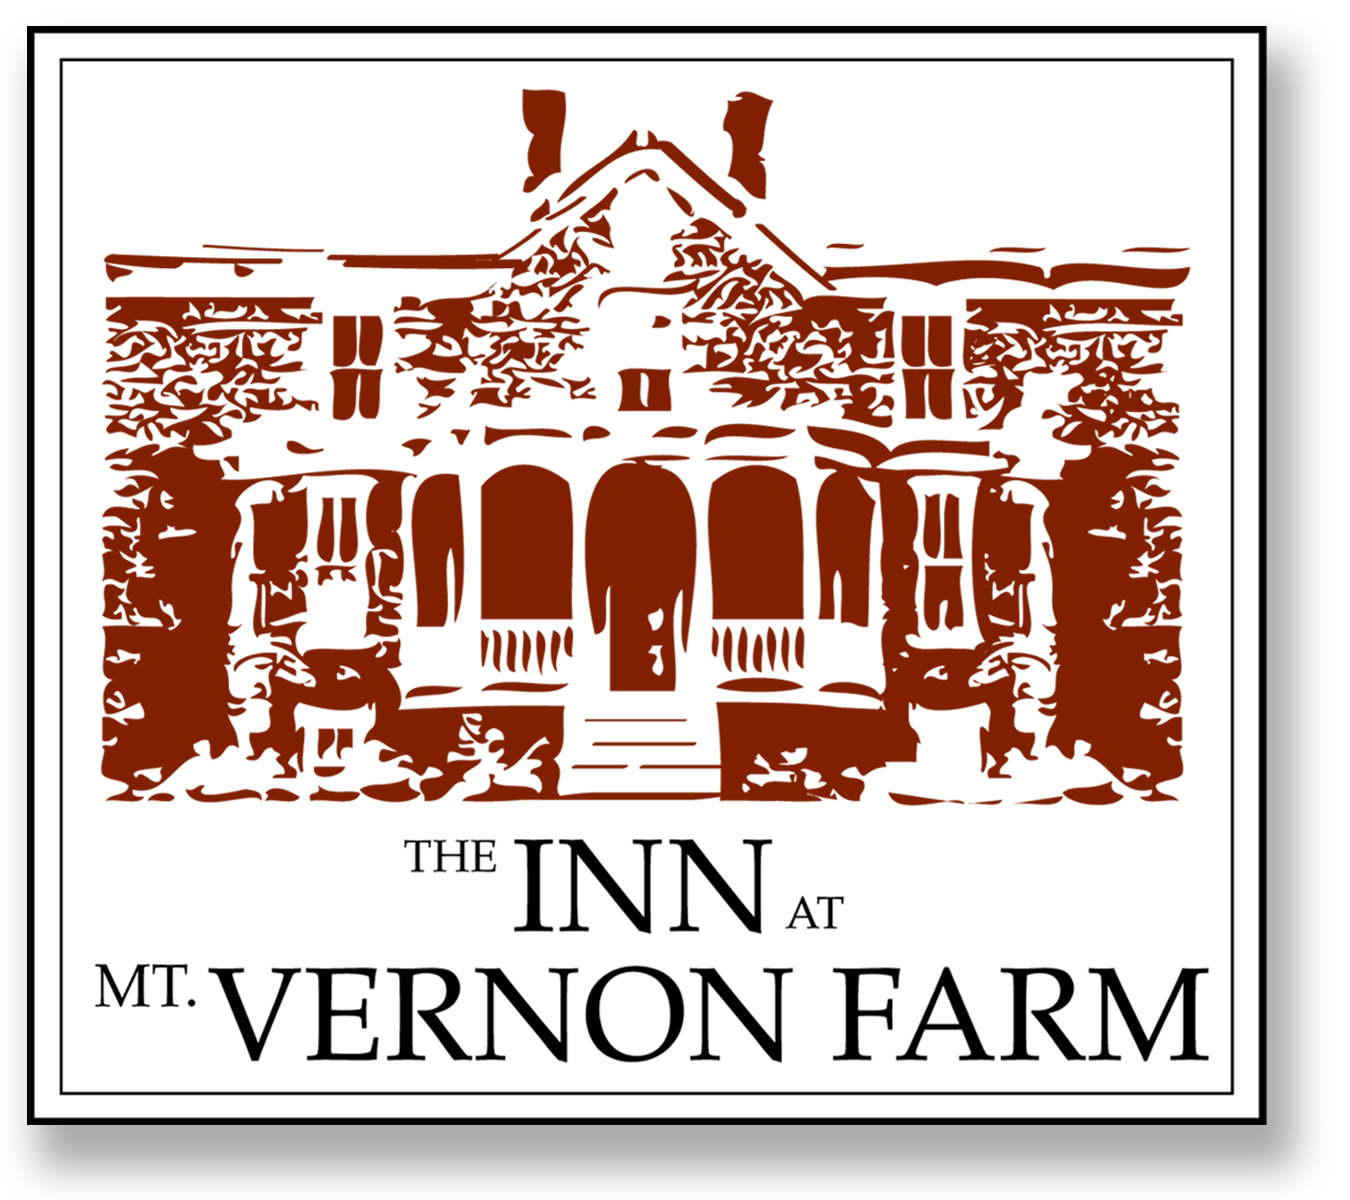 The Inn at Mount Vernon Farm